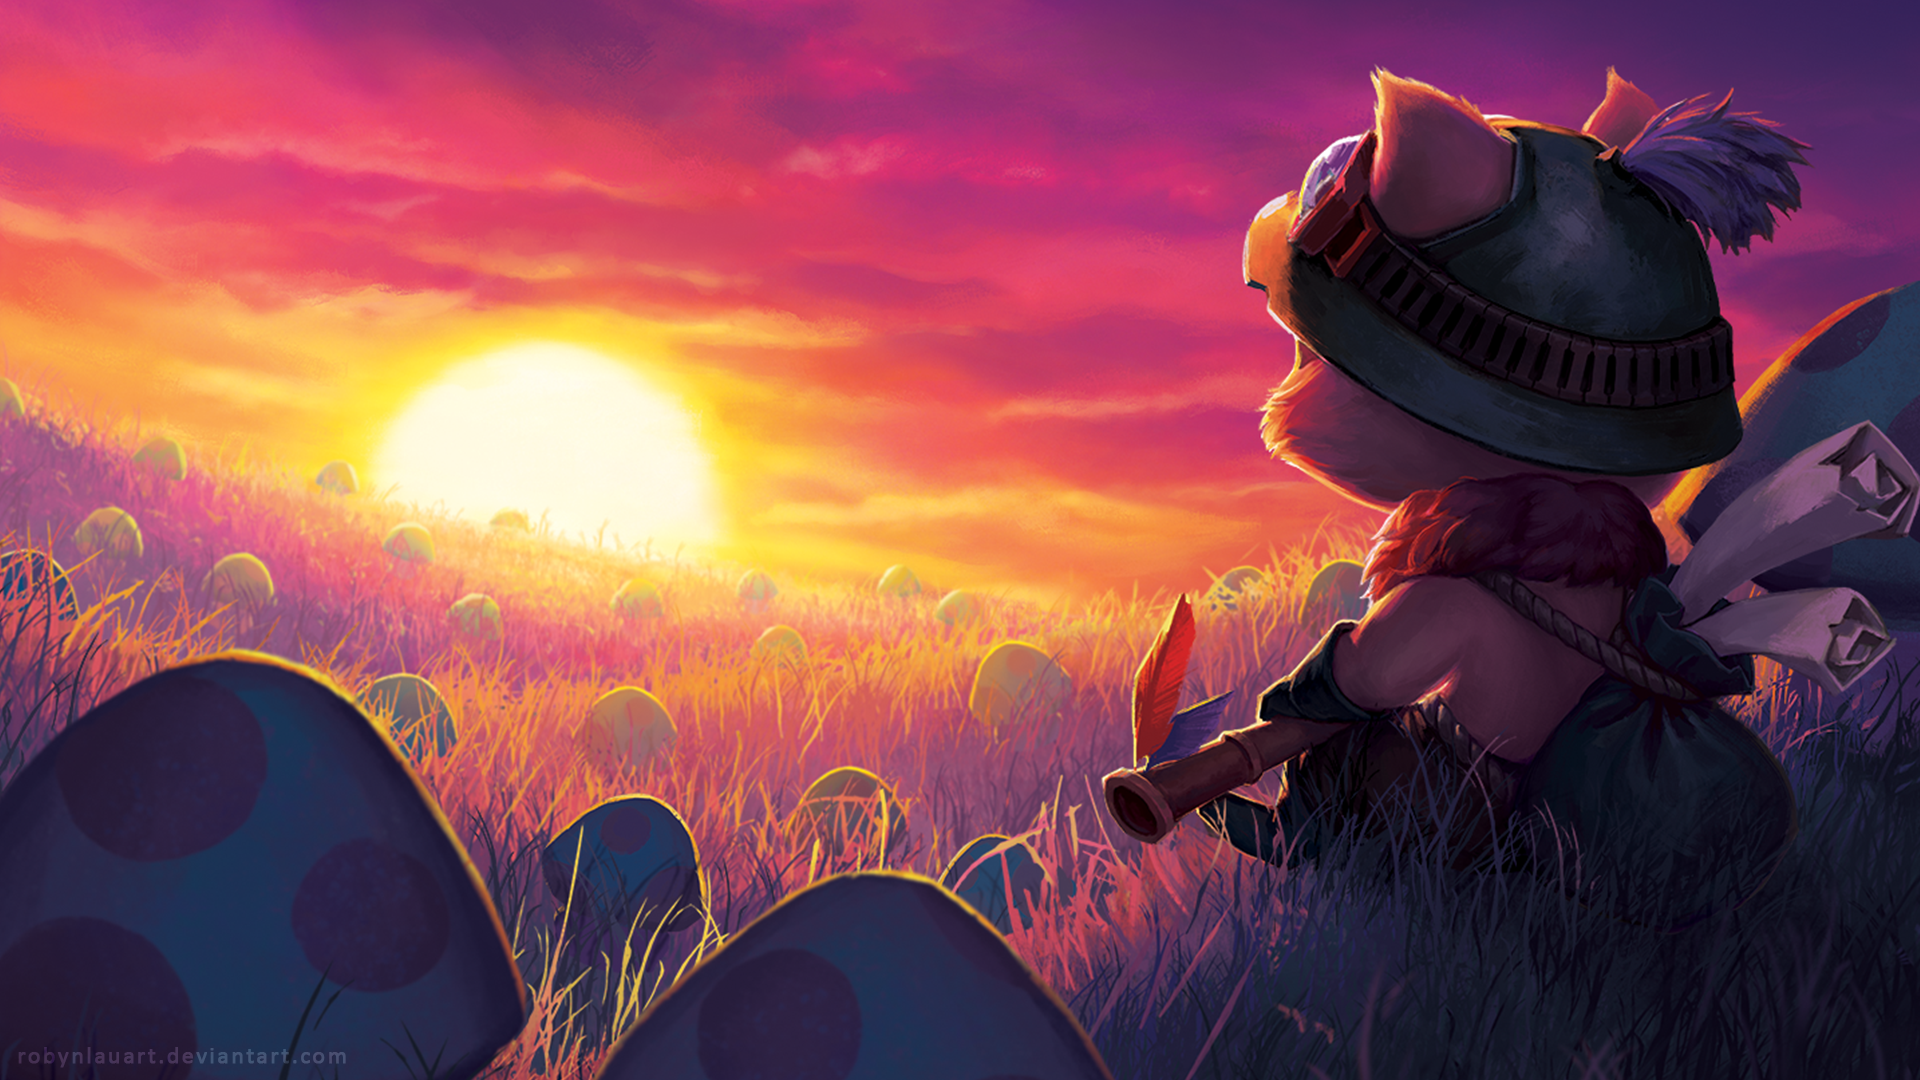 86 teemo (league of legends) hd wallpapers | background images